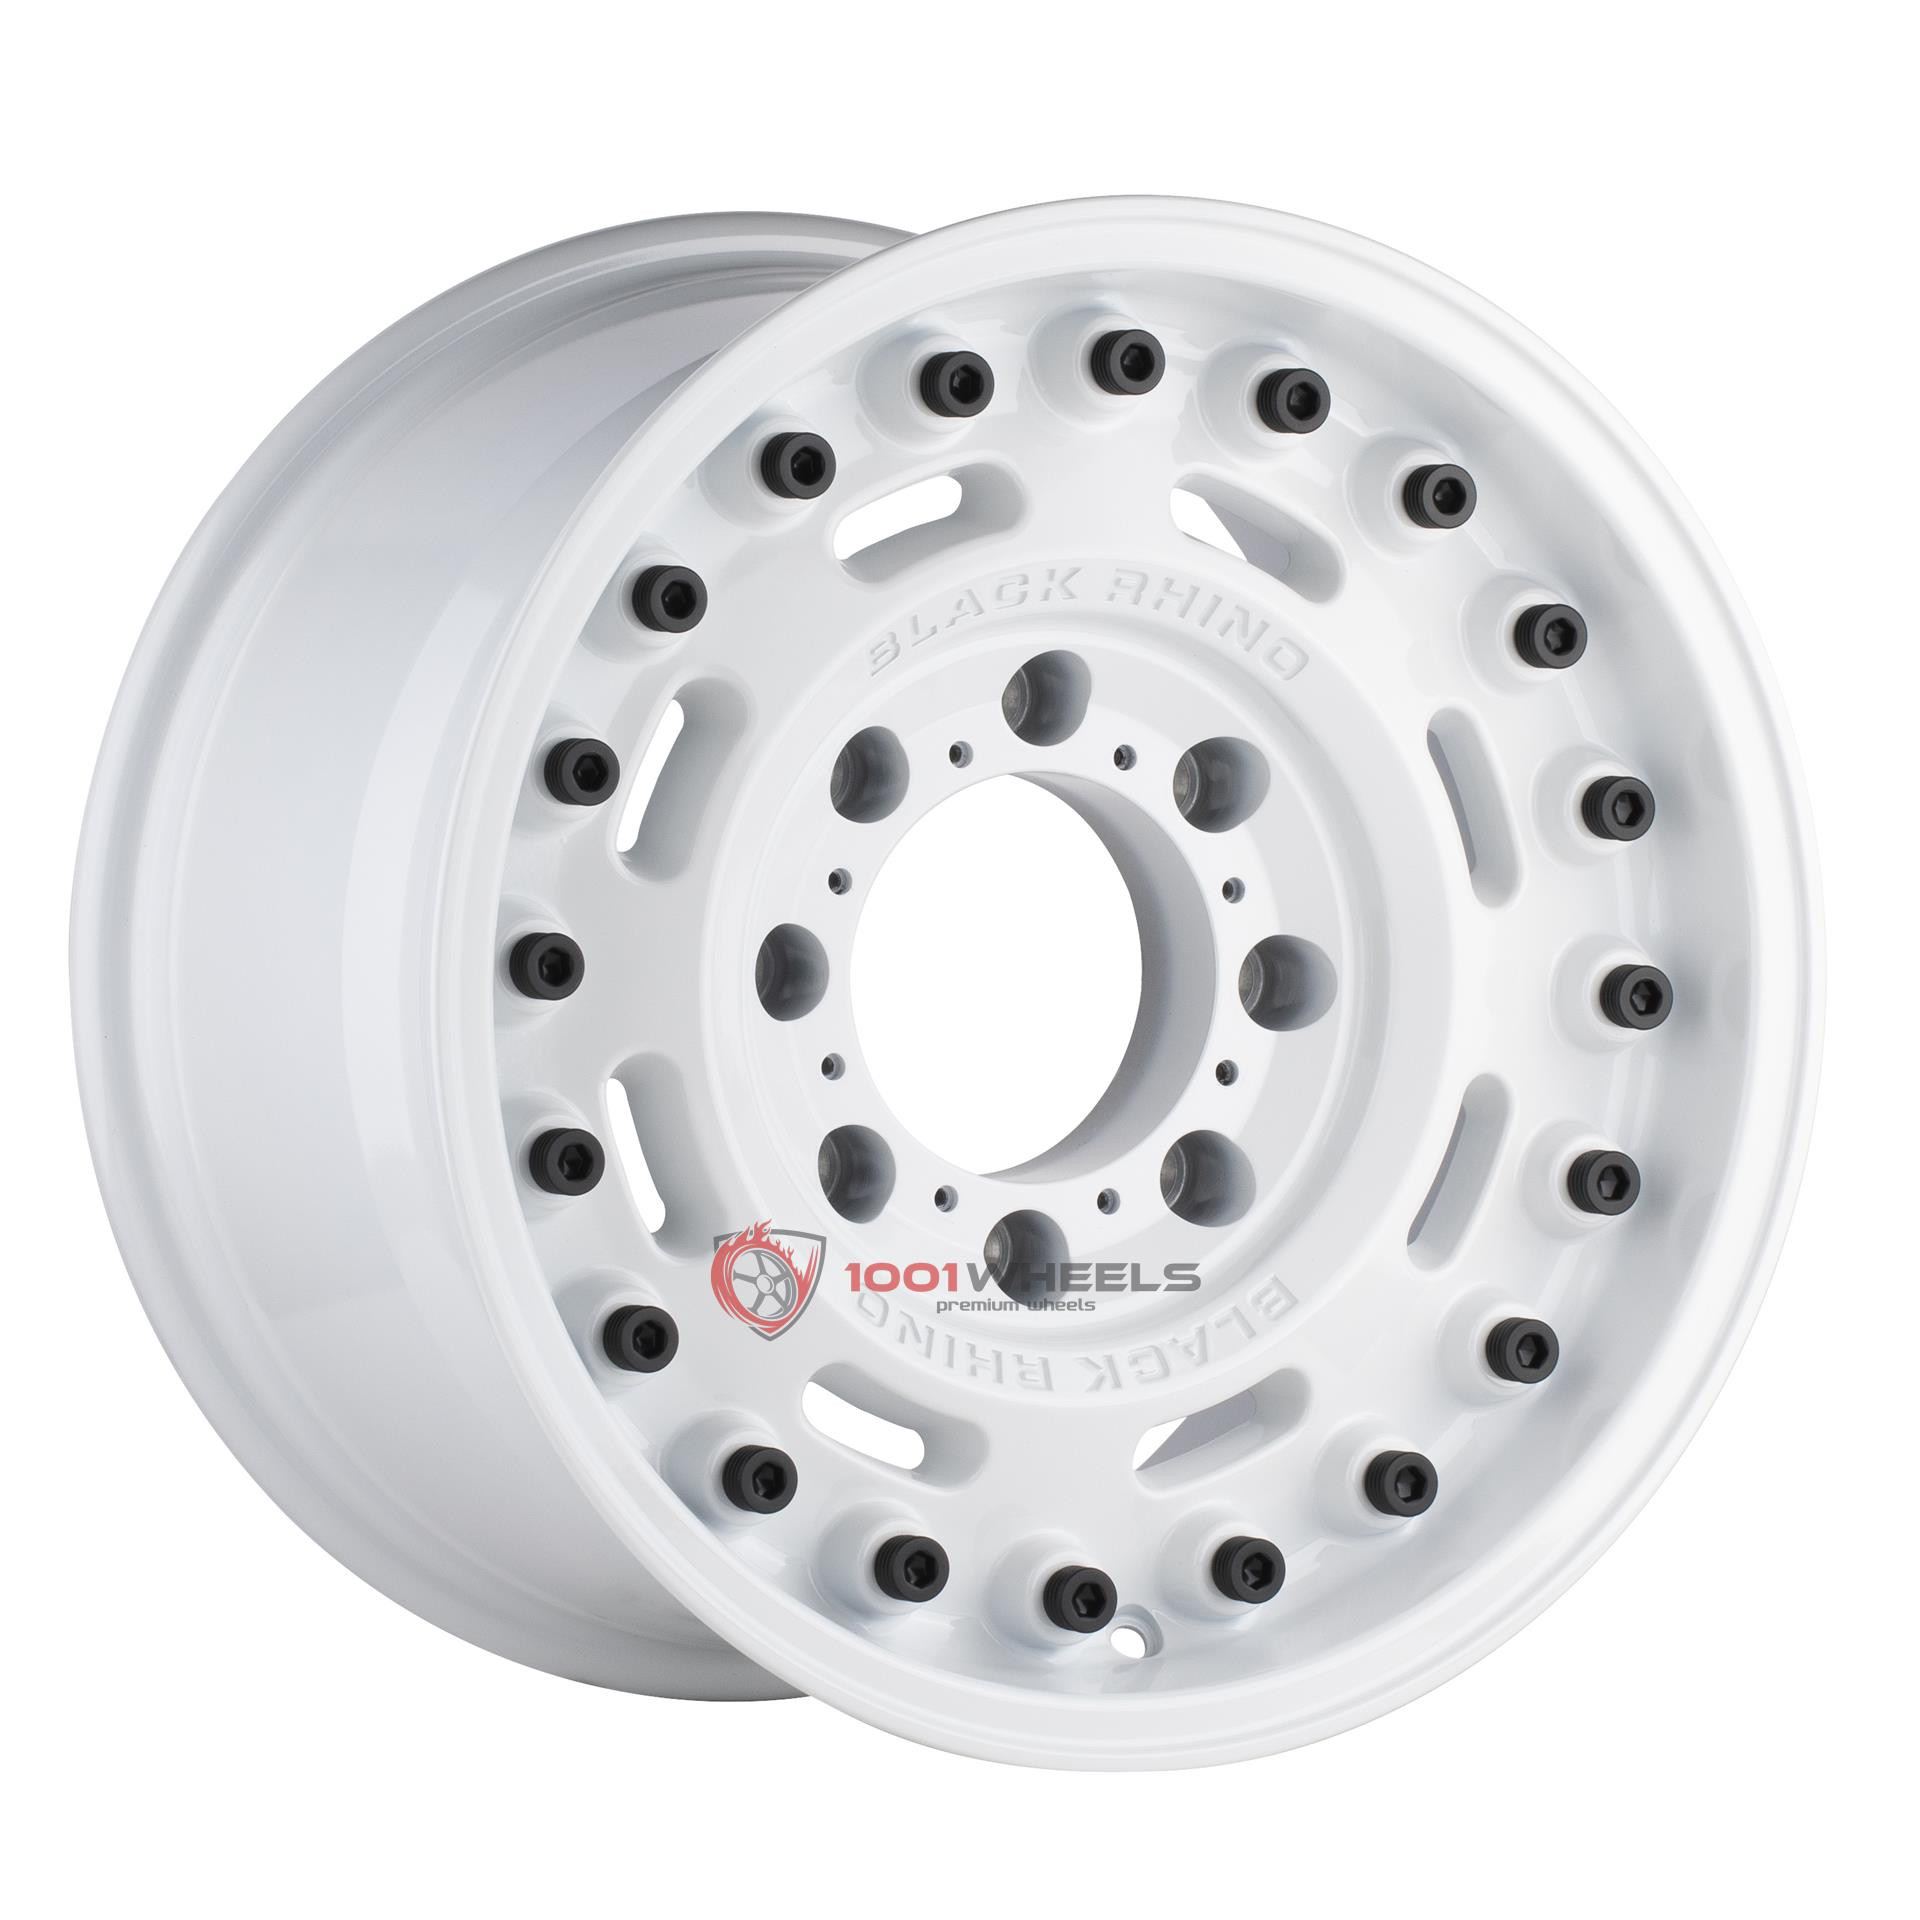 BLACK RHINO AXLE gloss-white